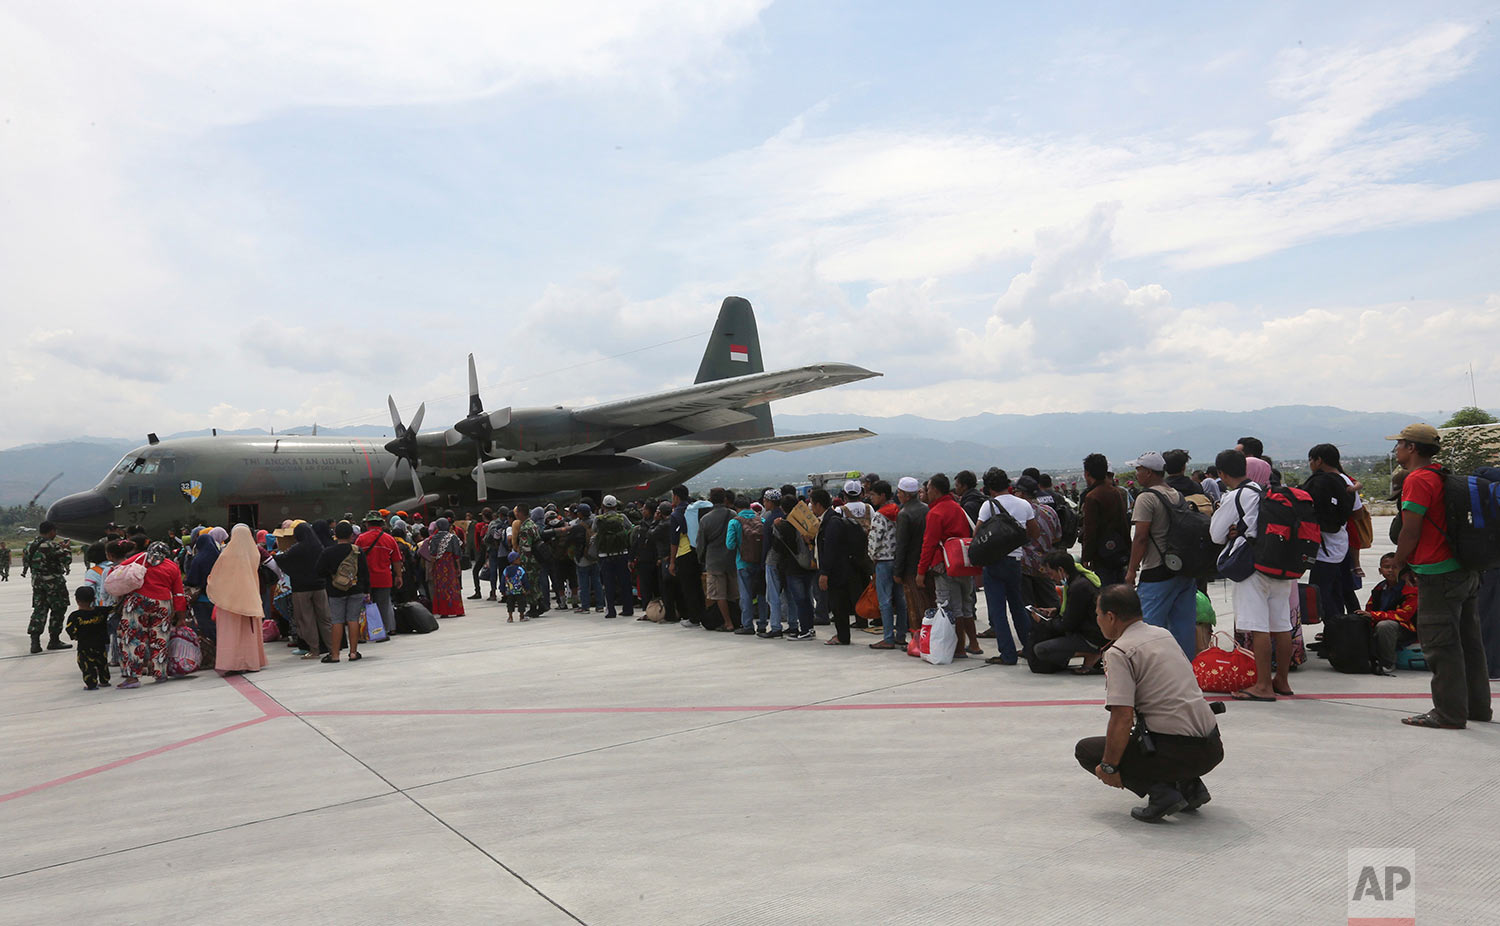 People line up to board an Indonesian Air Force cargo plane at Mutiara Sis Al-Jufri airport as they try to go out of Palu, Central Sulawesi Indonesia, Oct. 4, 2018. (AP Photo/Tatan Syuflana)